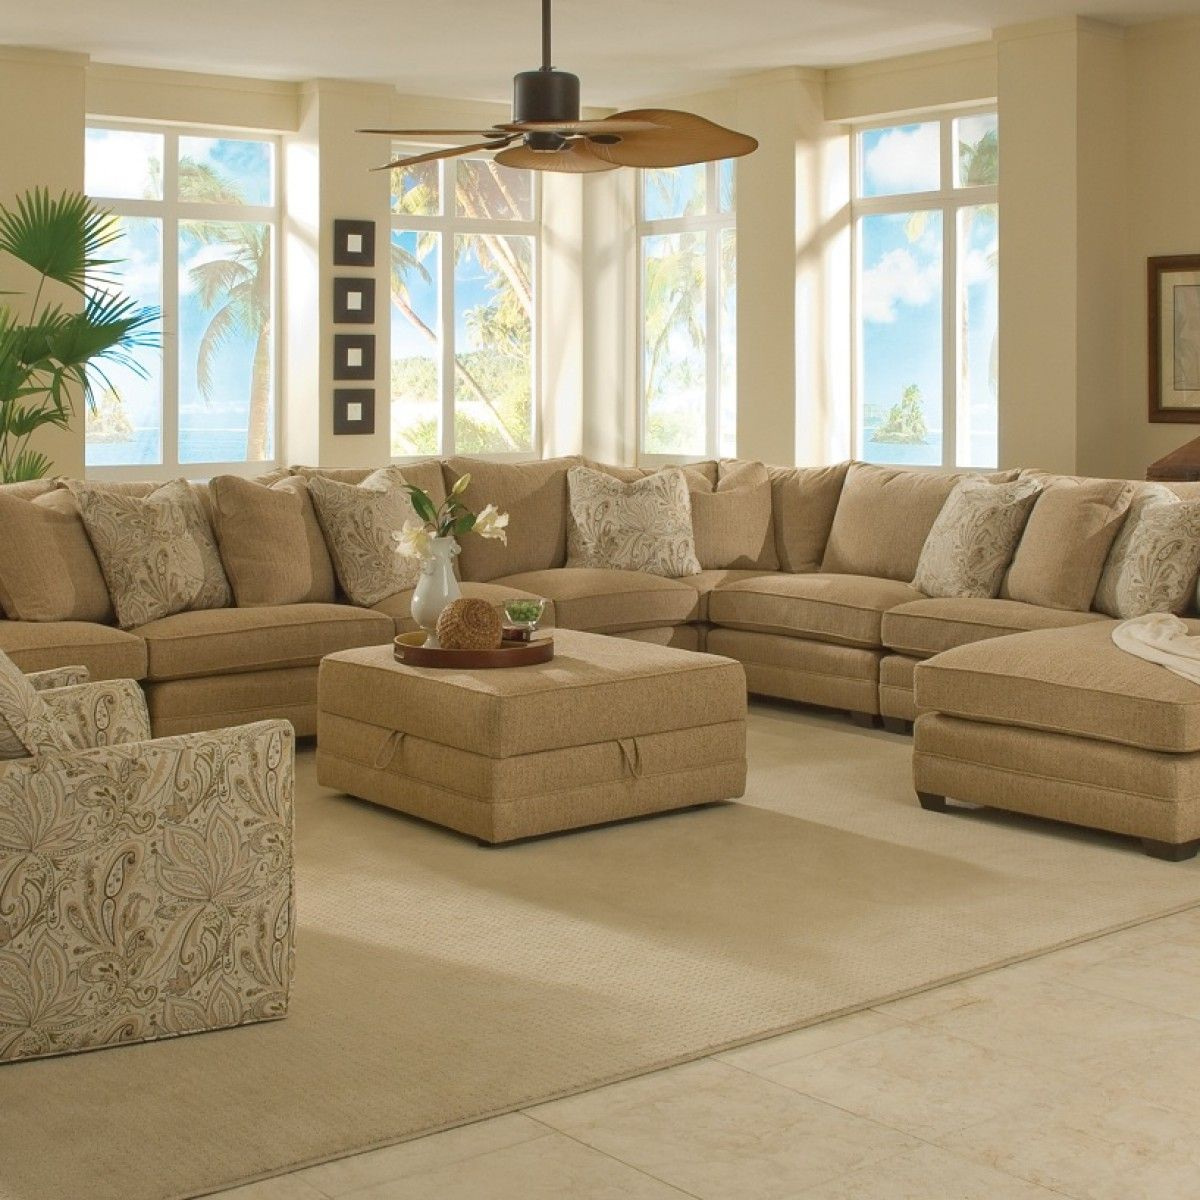 Magnificent large sectional sofas family room for Living room suites furniture